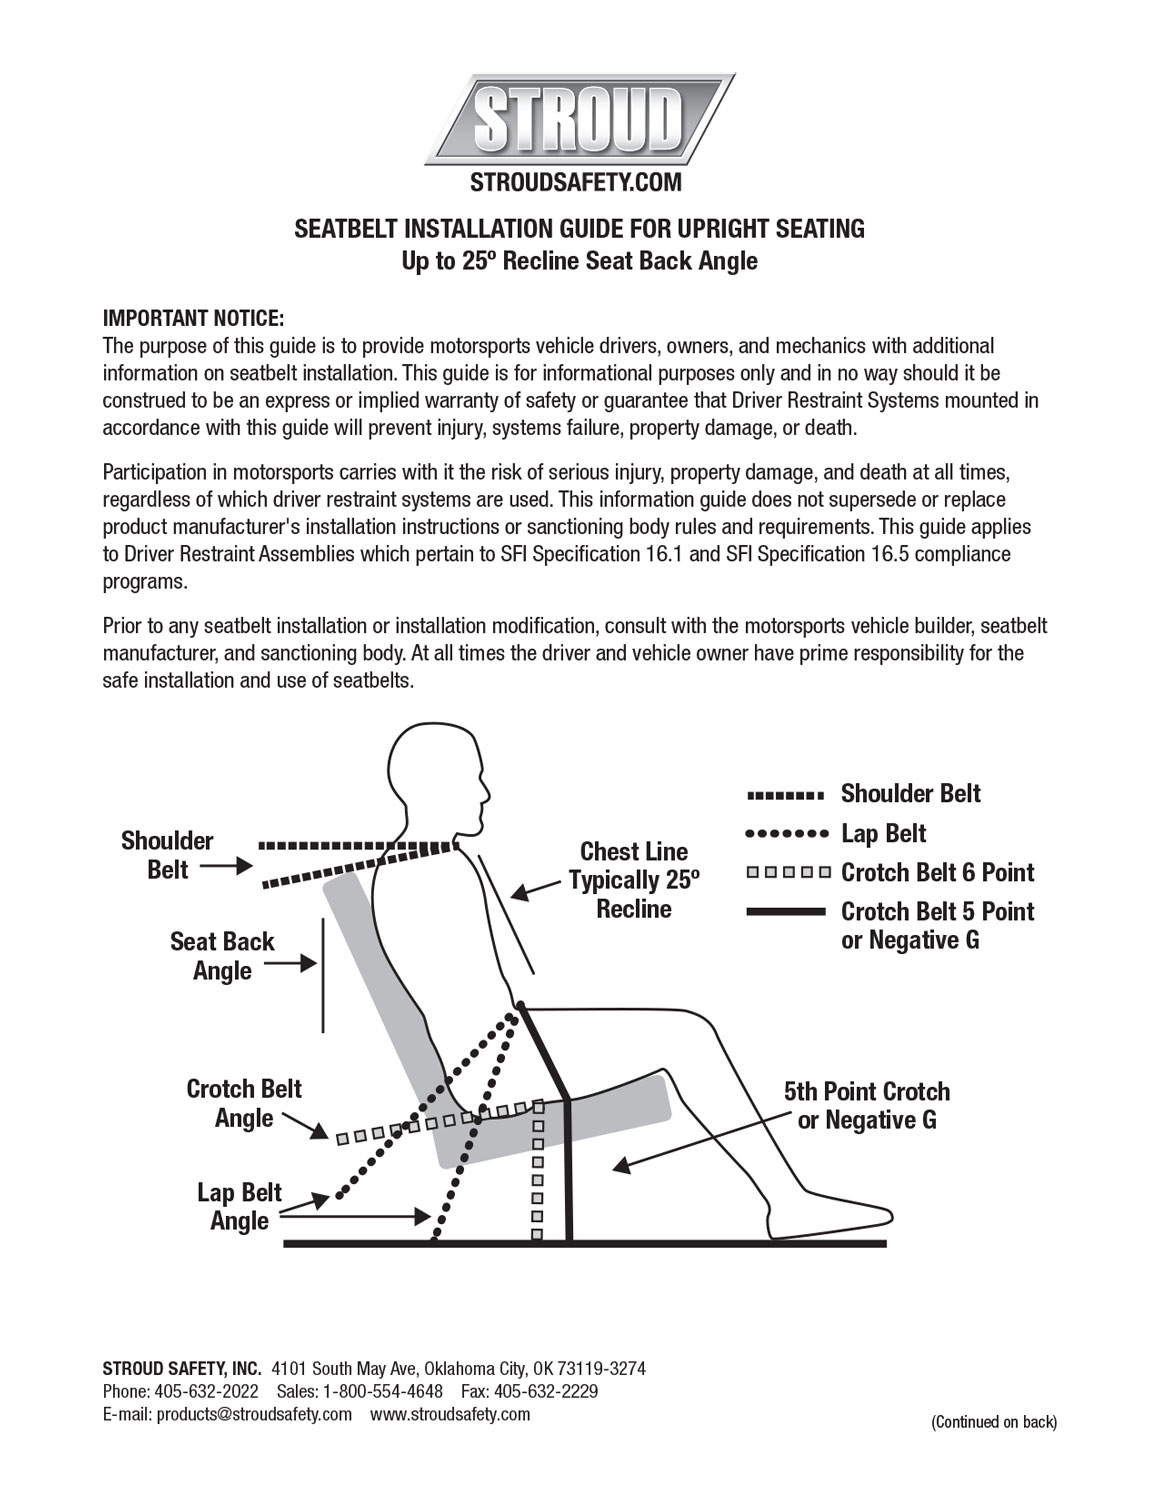 Download seat belt installation guide (PDF).